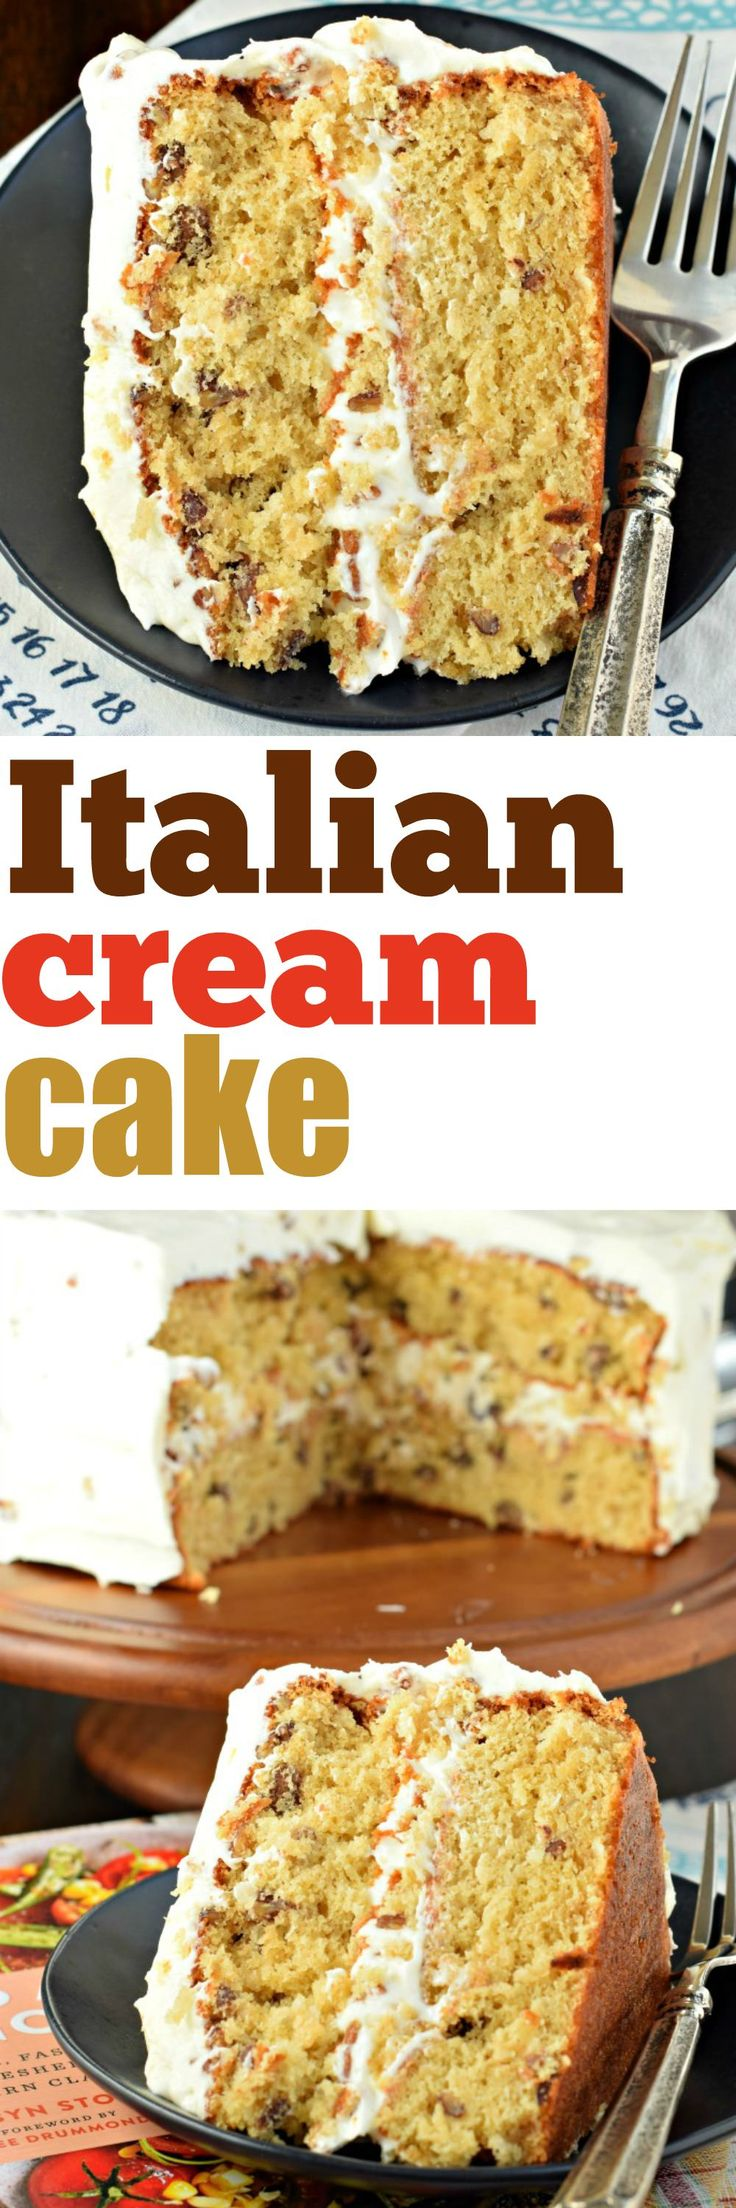 A classic southern Italian Cream cake recipe chock full of coconut and pecans with a cream cheese frosting!